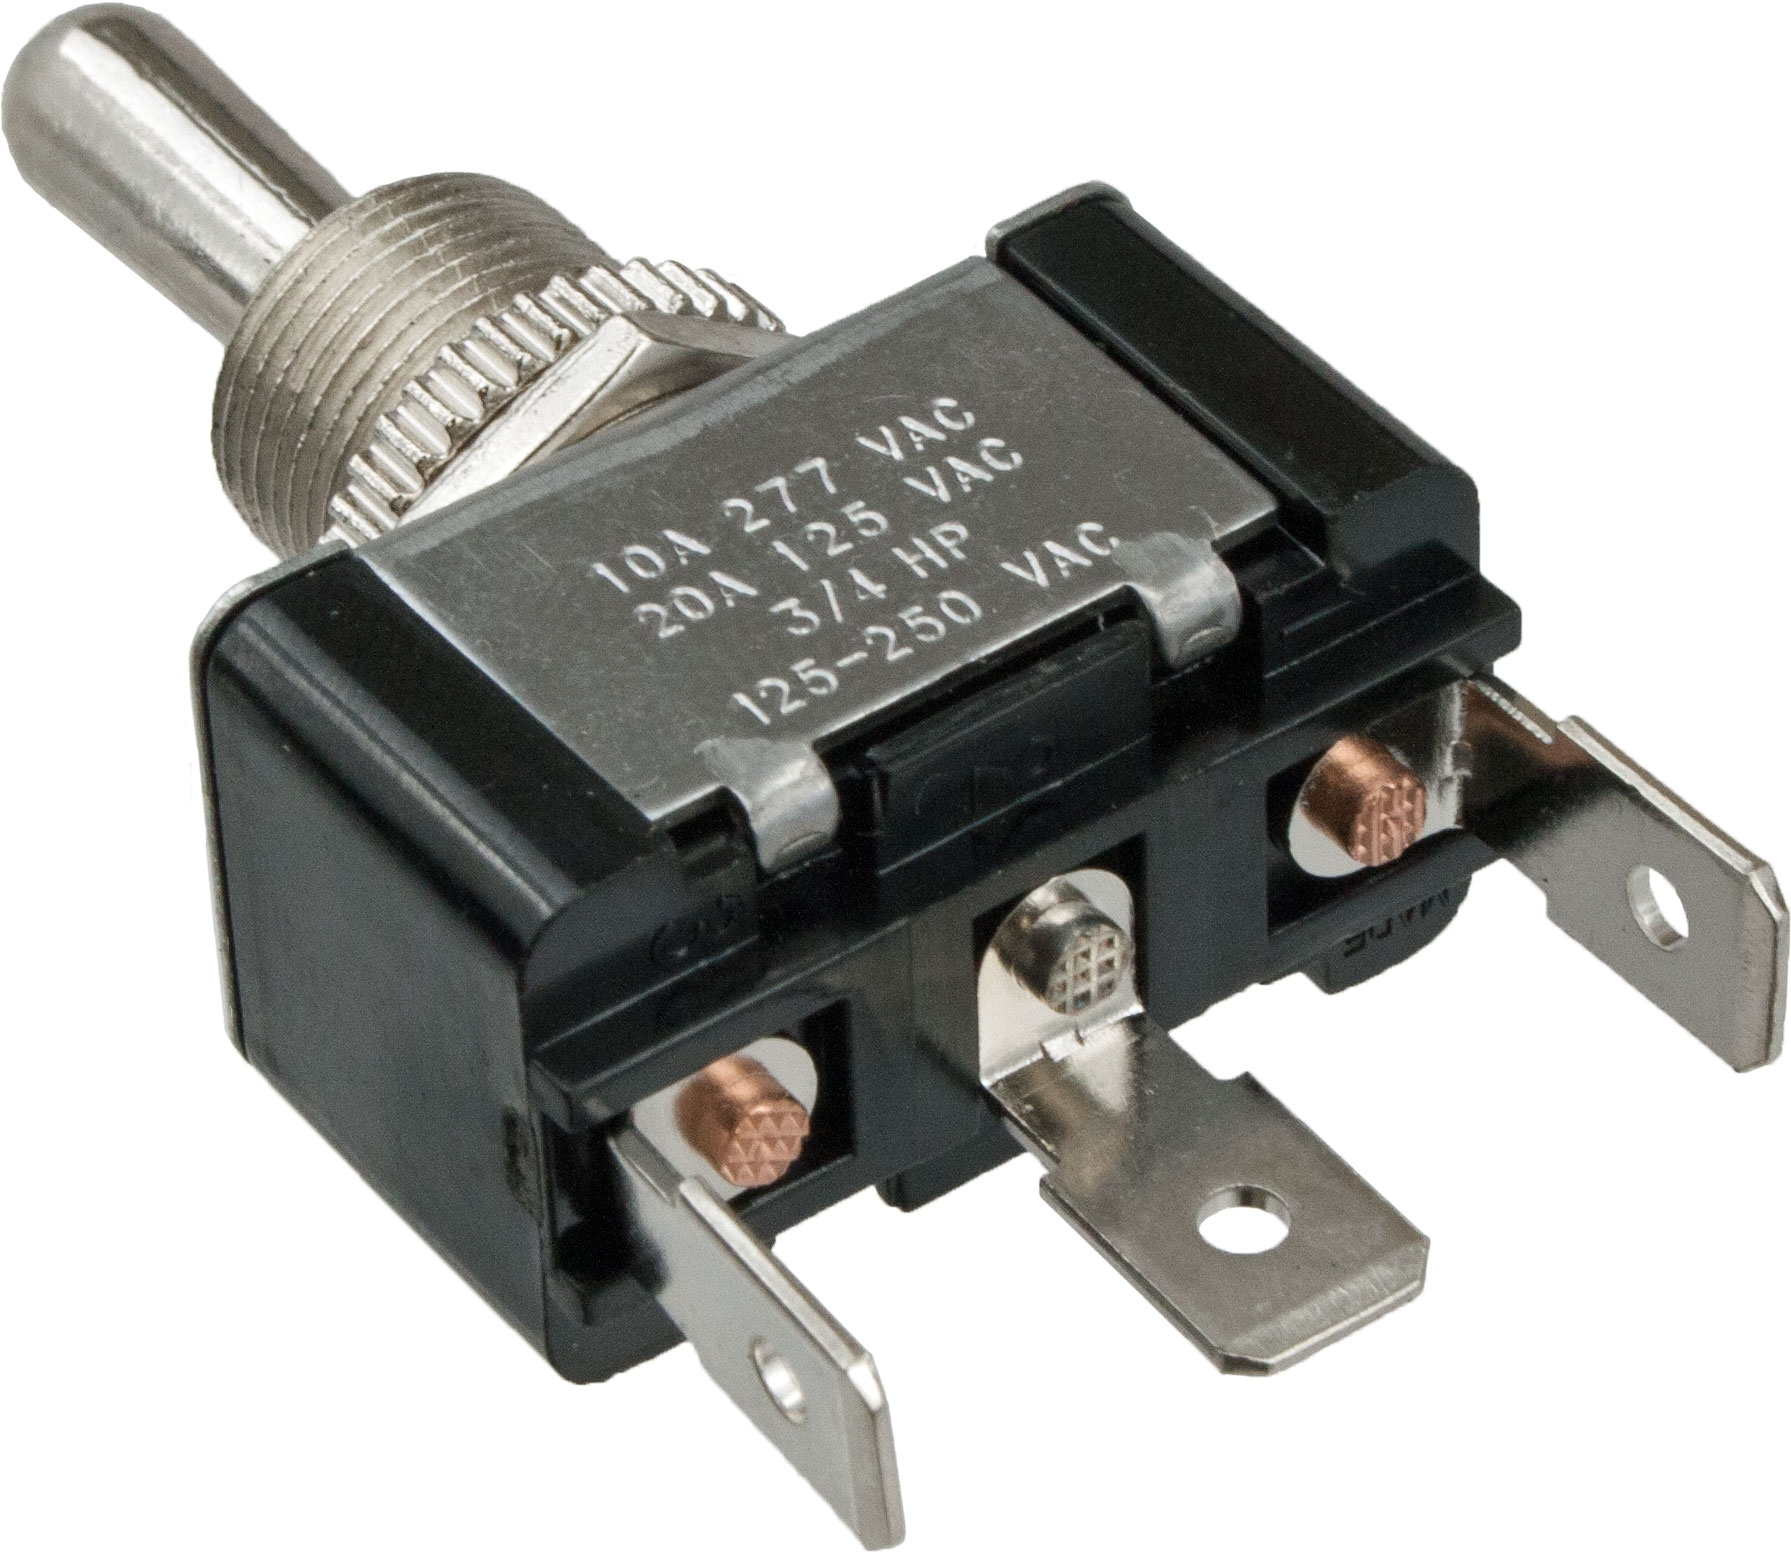 3 Blade Terminal Toggle Switch Momentary Mom On Off Spdt 12 Volt 25 Amp Metal Automotive Wiring 765062 Elecdirect